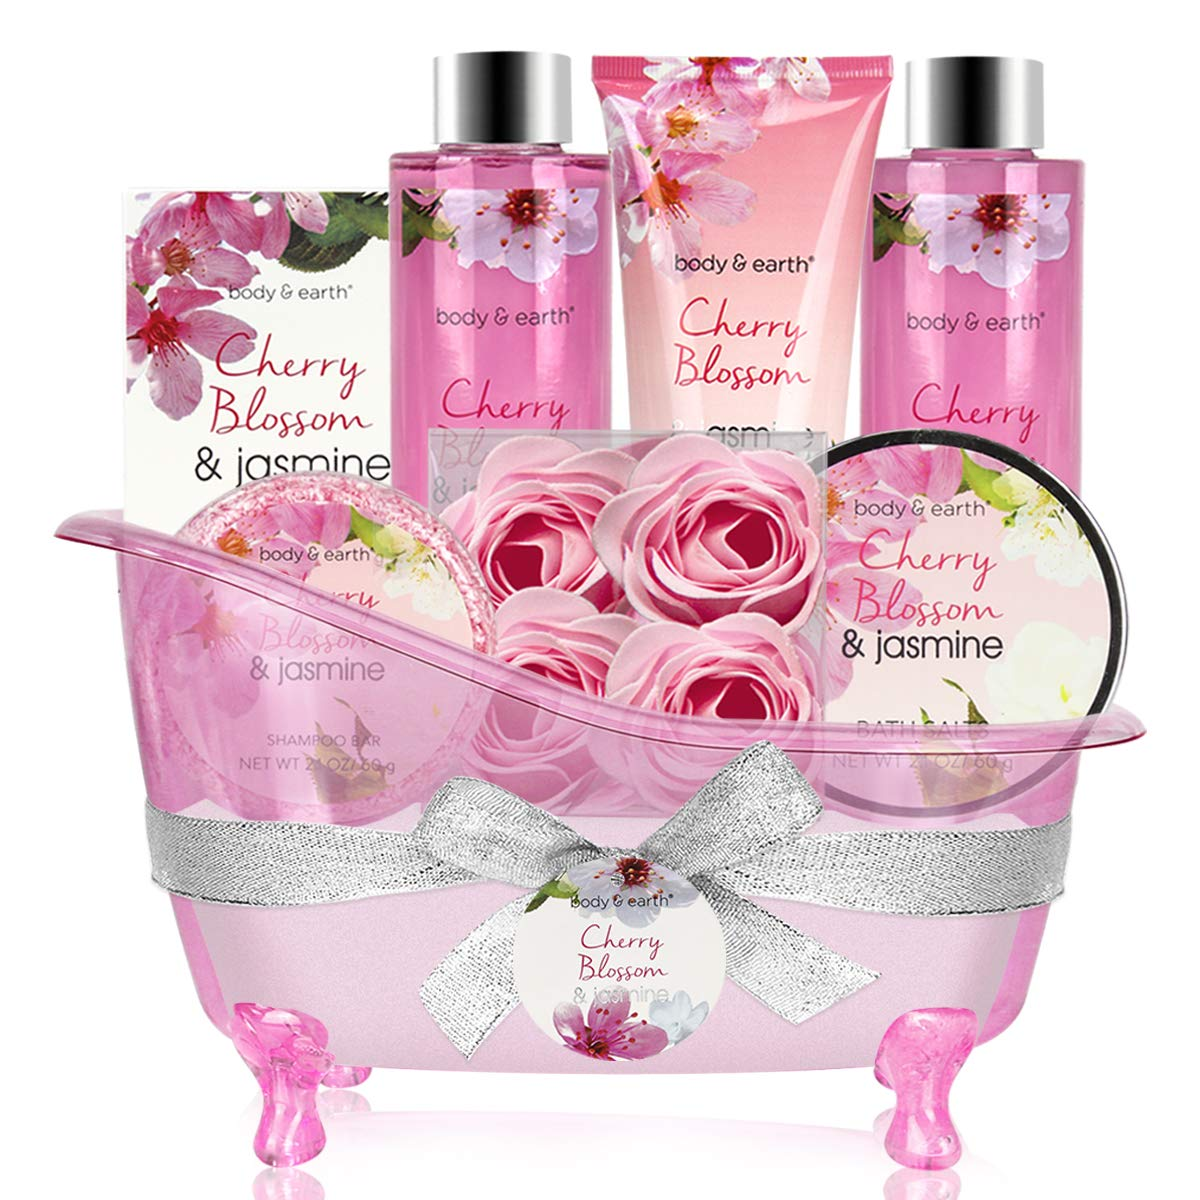 Bath and Body Gift Set – 8 Piece Gift Basket with Cherry Blossom & Jasmine Scent – Includes Bubble Bath, Shower Gel, Soap, Body & Hand Lotion, Bath Salts and More, Perfect Gift Set for Women